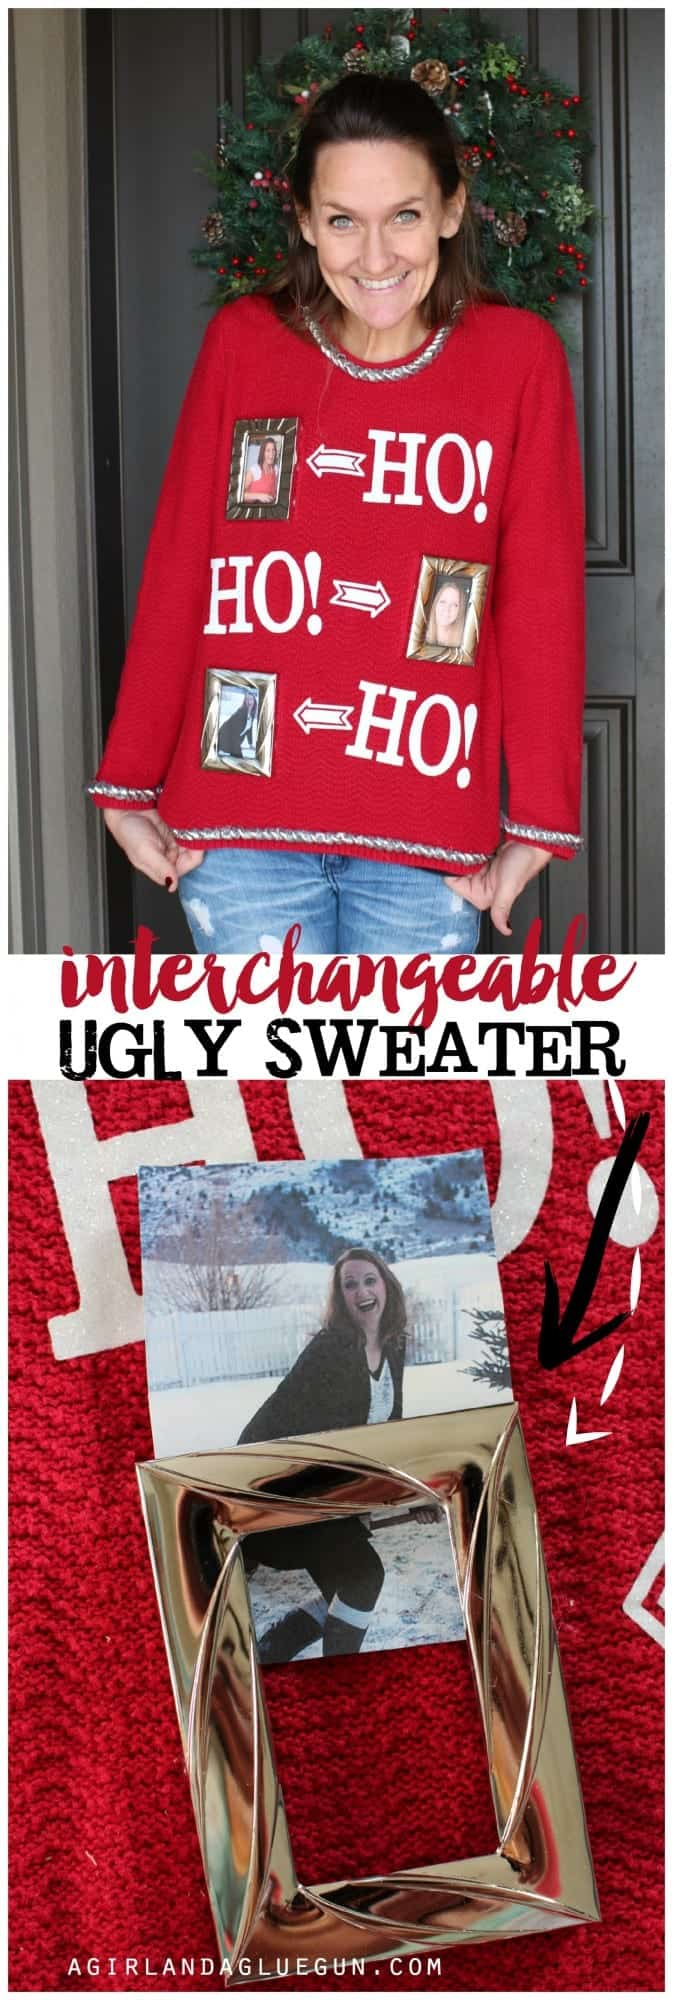 interchangeable ugly sweater idea with hot glue